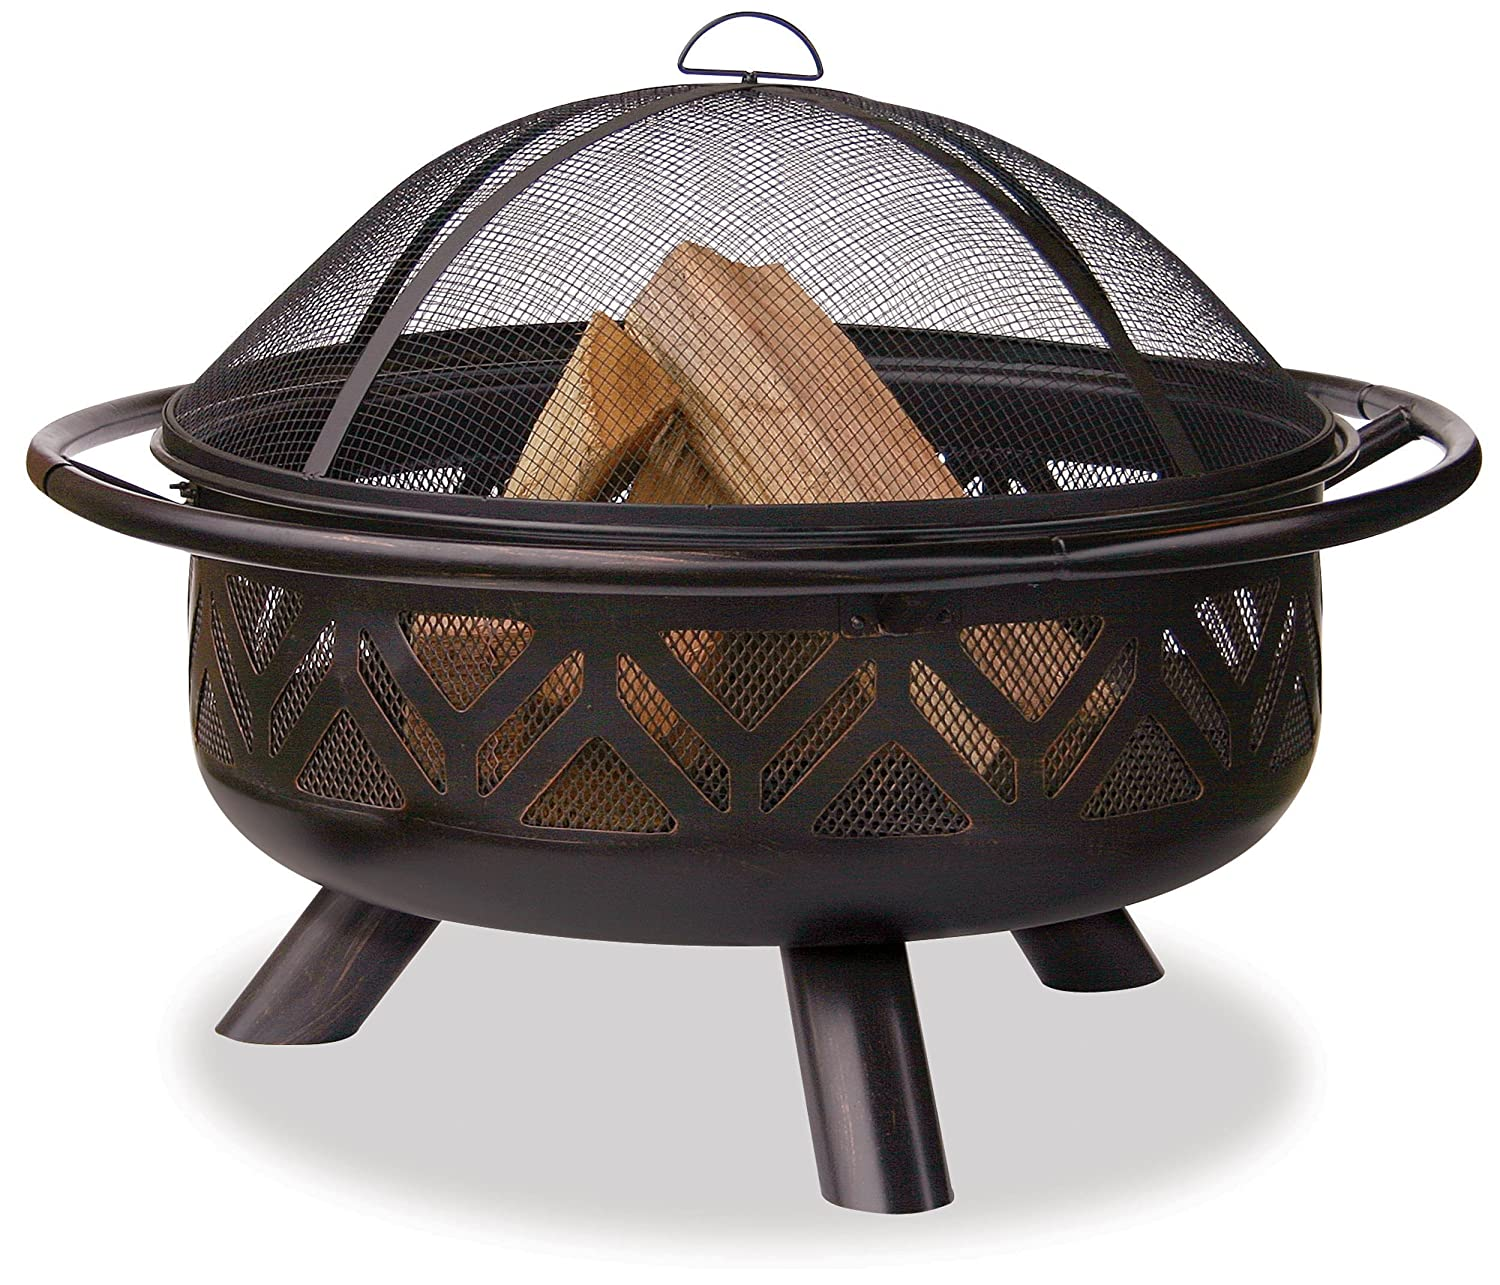 Blue Rhino WAD1009SP 36' Oil Rub Bronze Firebowl with Geometric Design